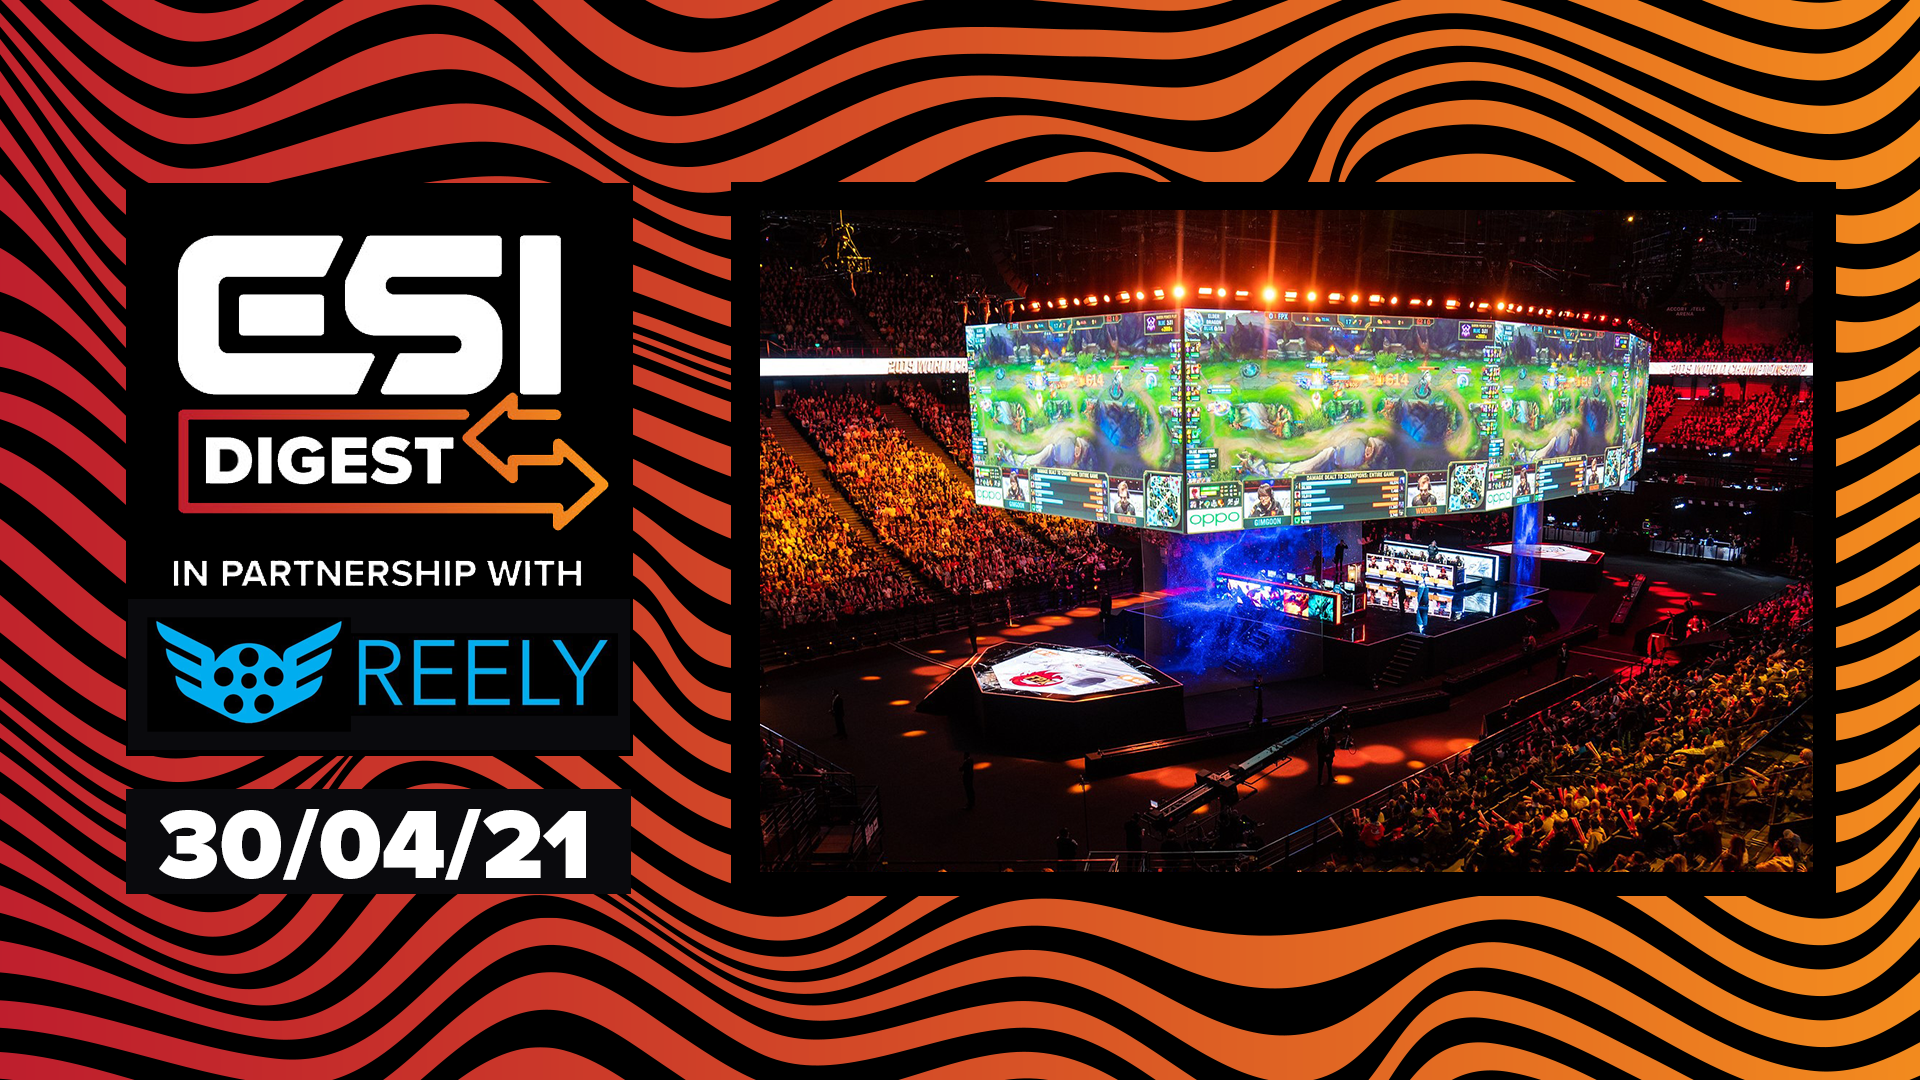 Huya secures Chinese League of Legends deal, ECI launches   ESI Digest #40 thumbnail